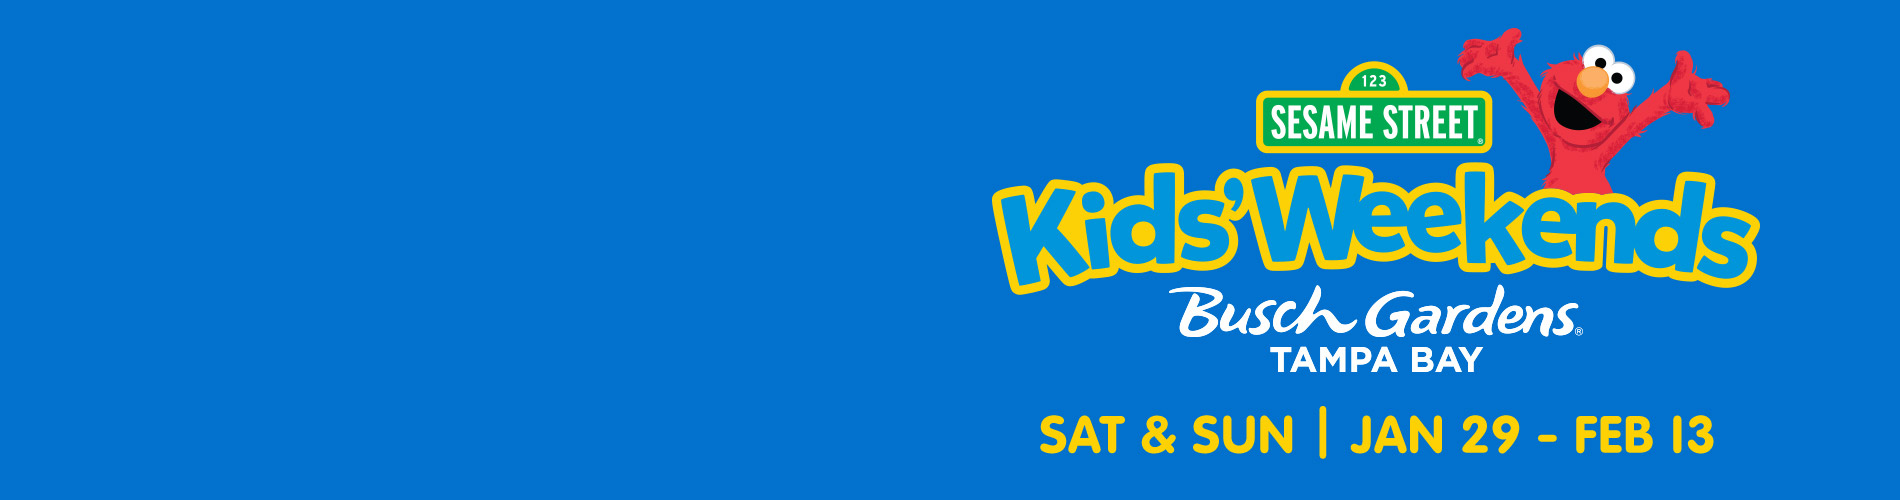 Sesame Street Kids' Weekends | Saturdays - Sundays and President's Day; Jan. 30 - Feb. 15